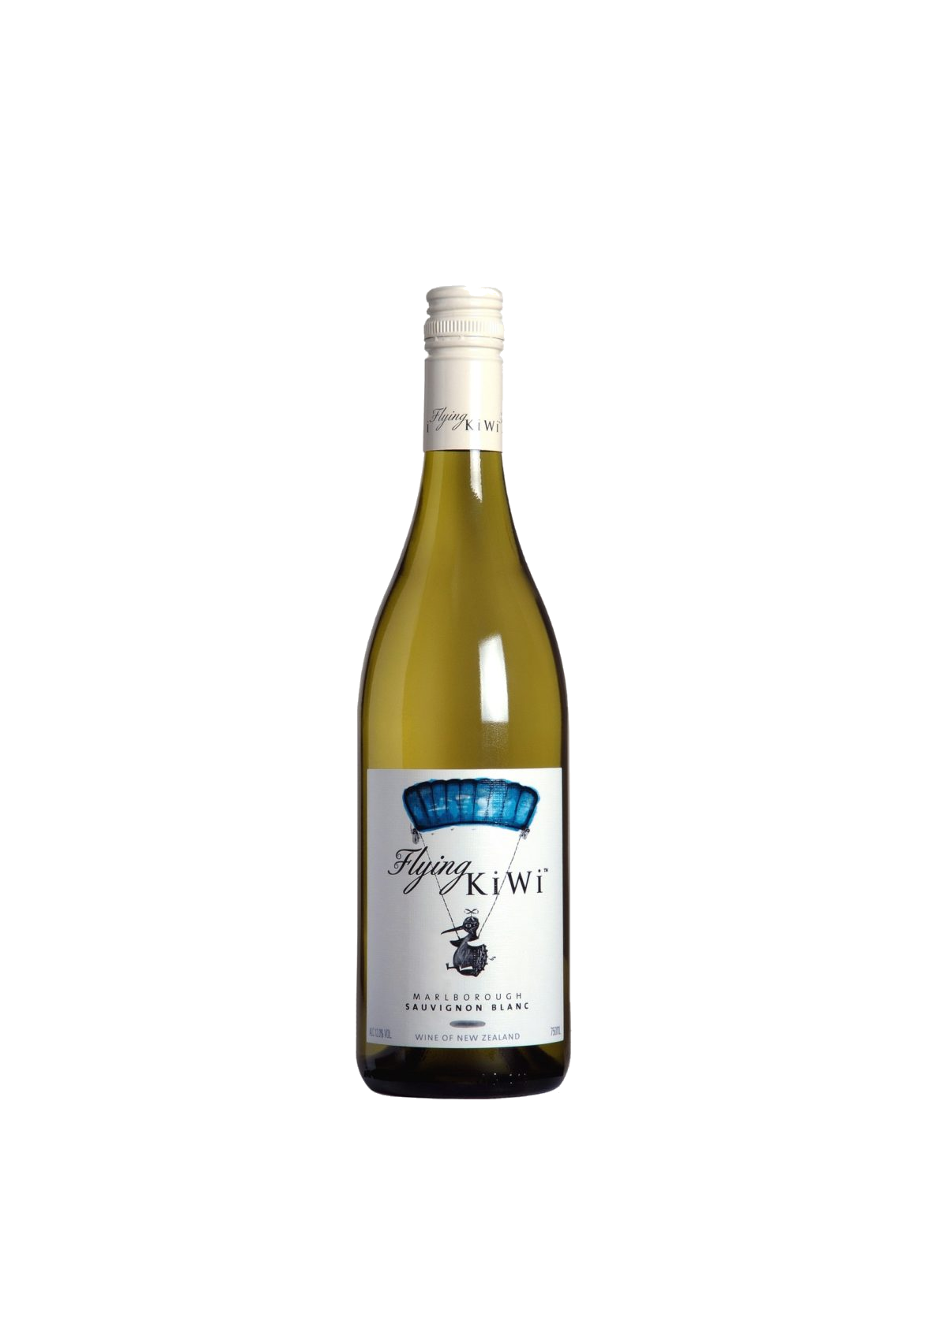 Flying Kiwi Marlborough Sauvignon Blanc 2017